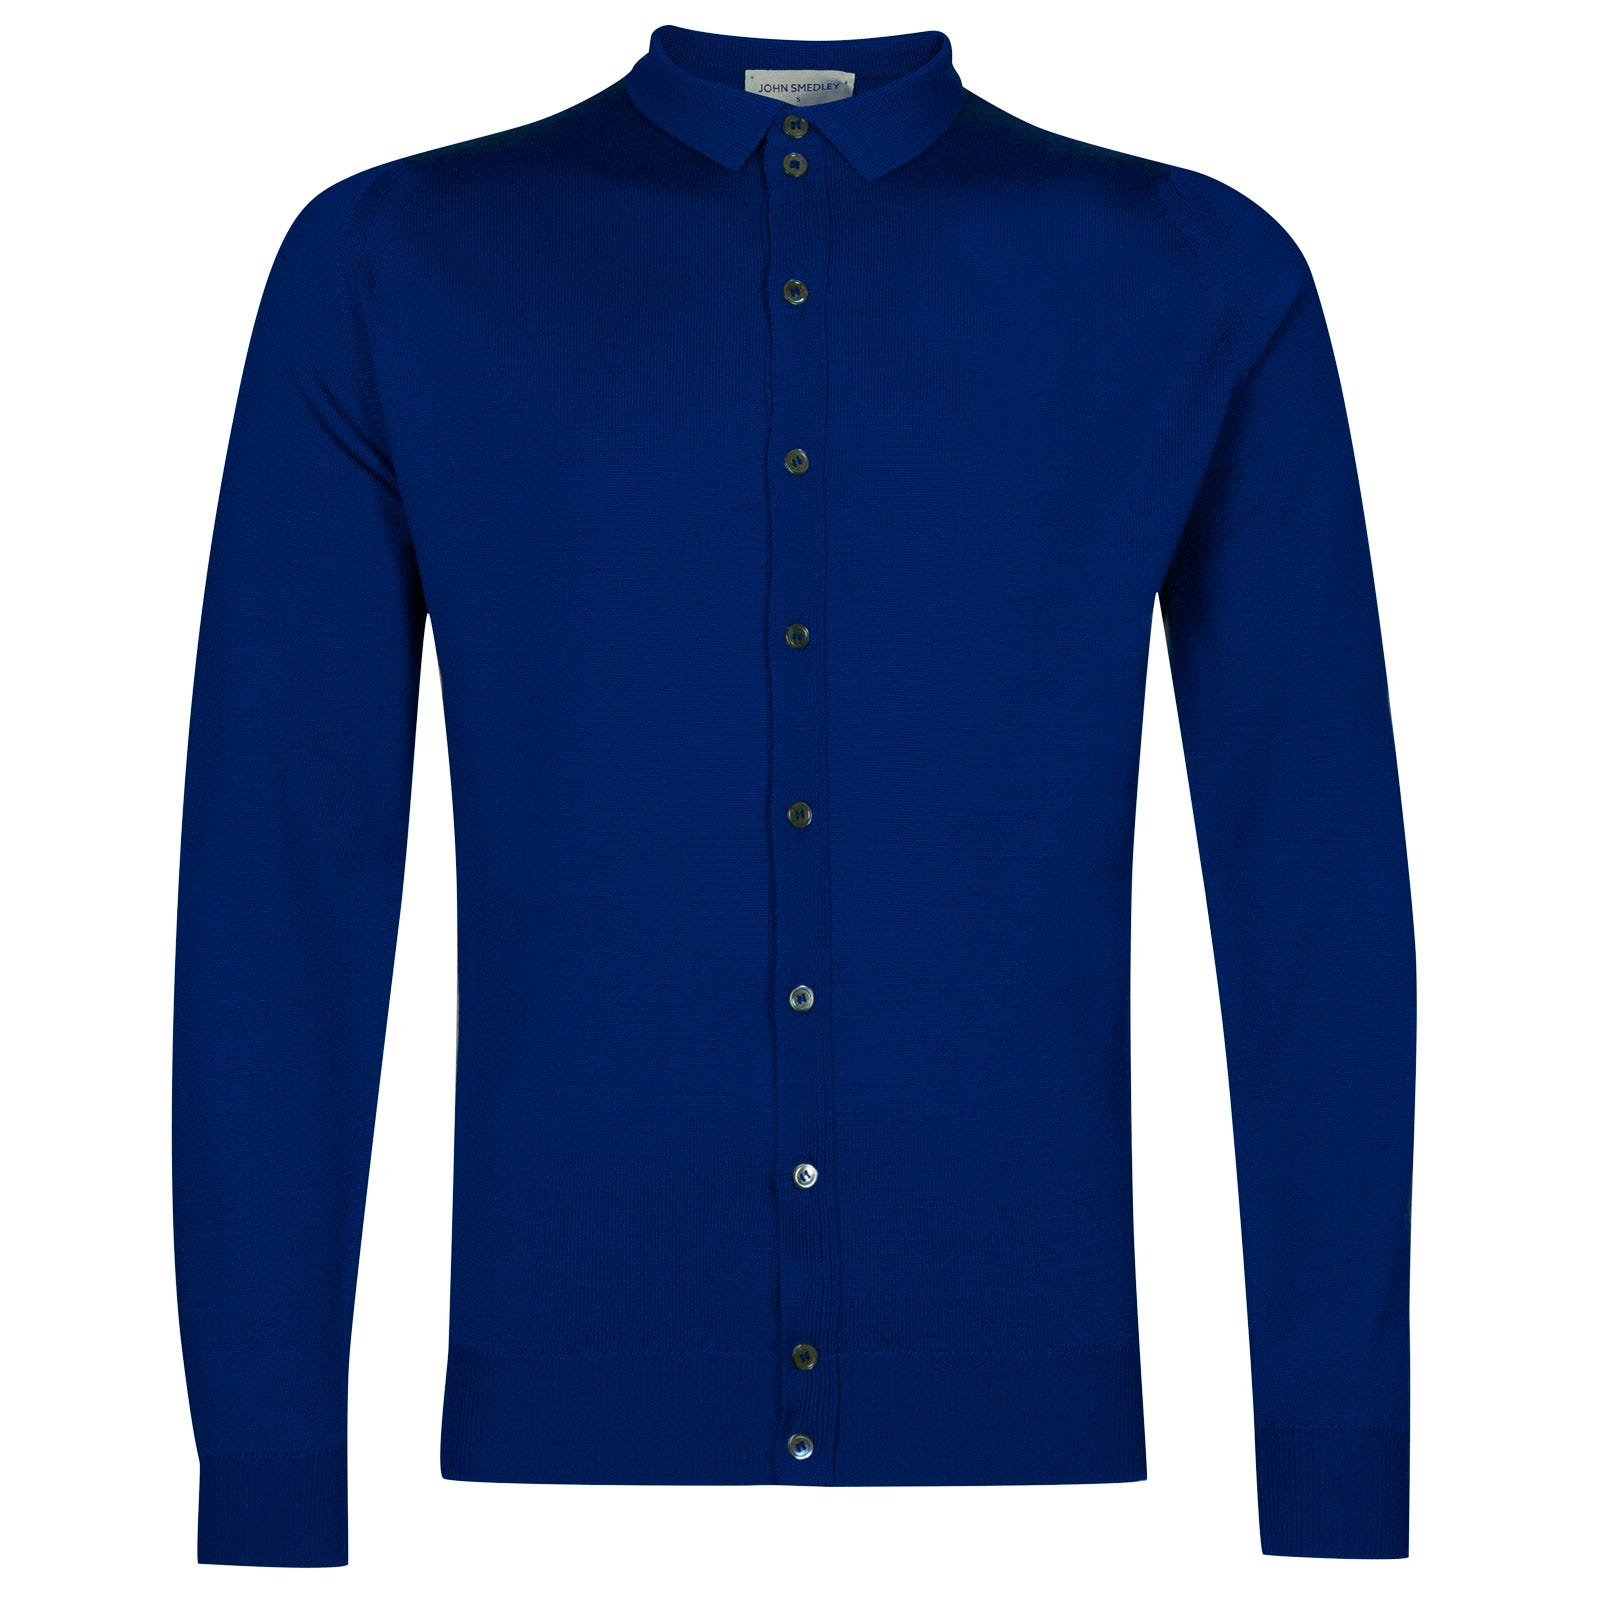 John Smedley parwish Merino Wool Shirt in Coniston Blue-S